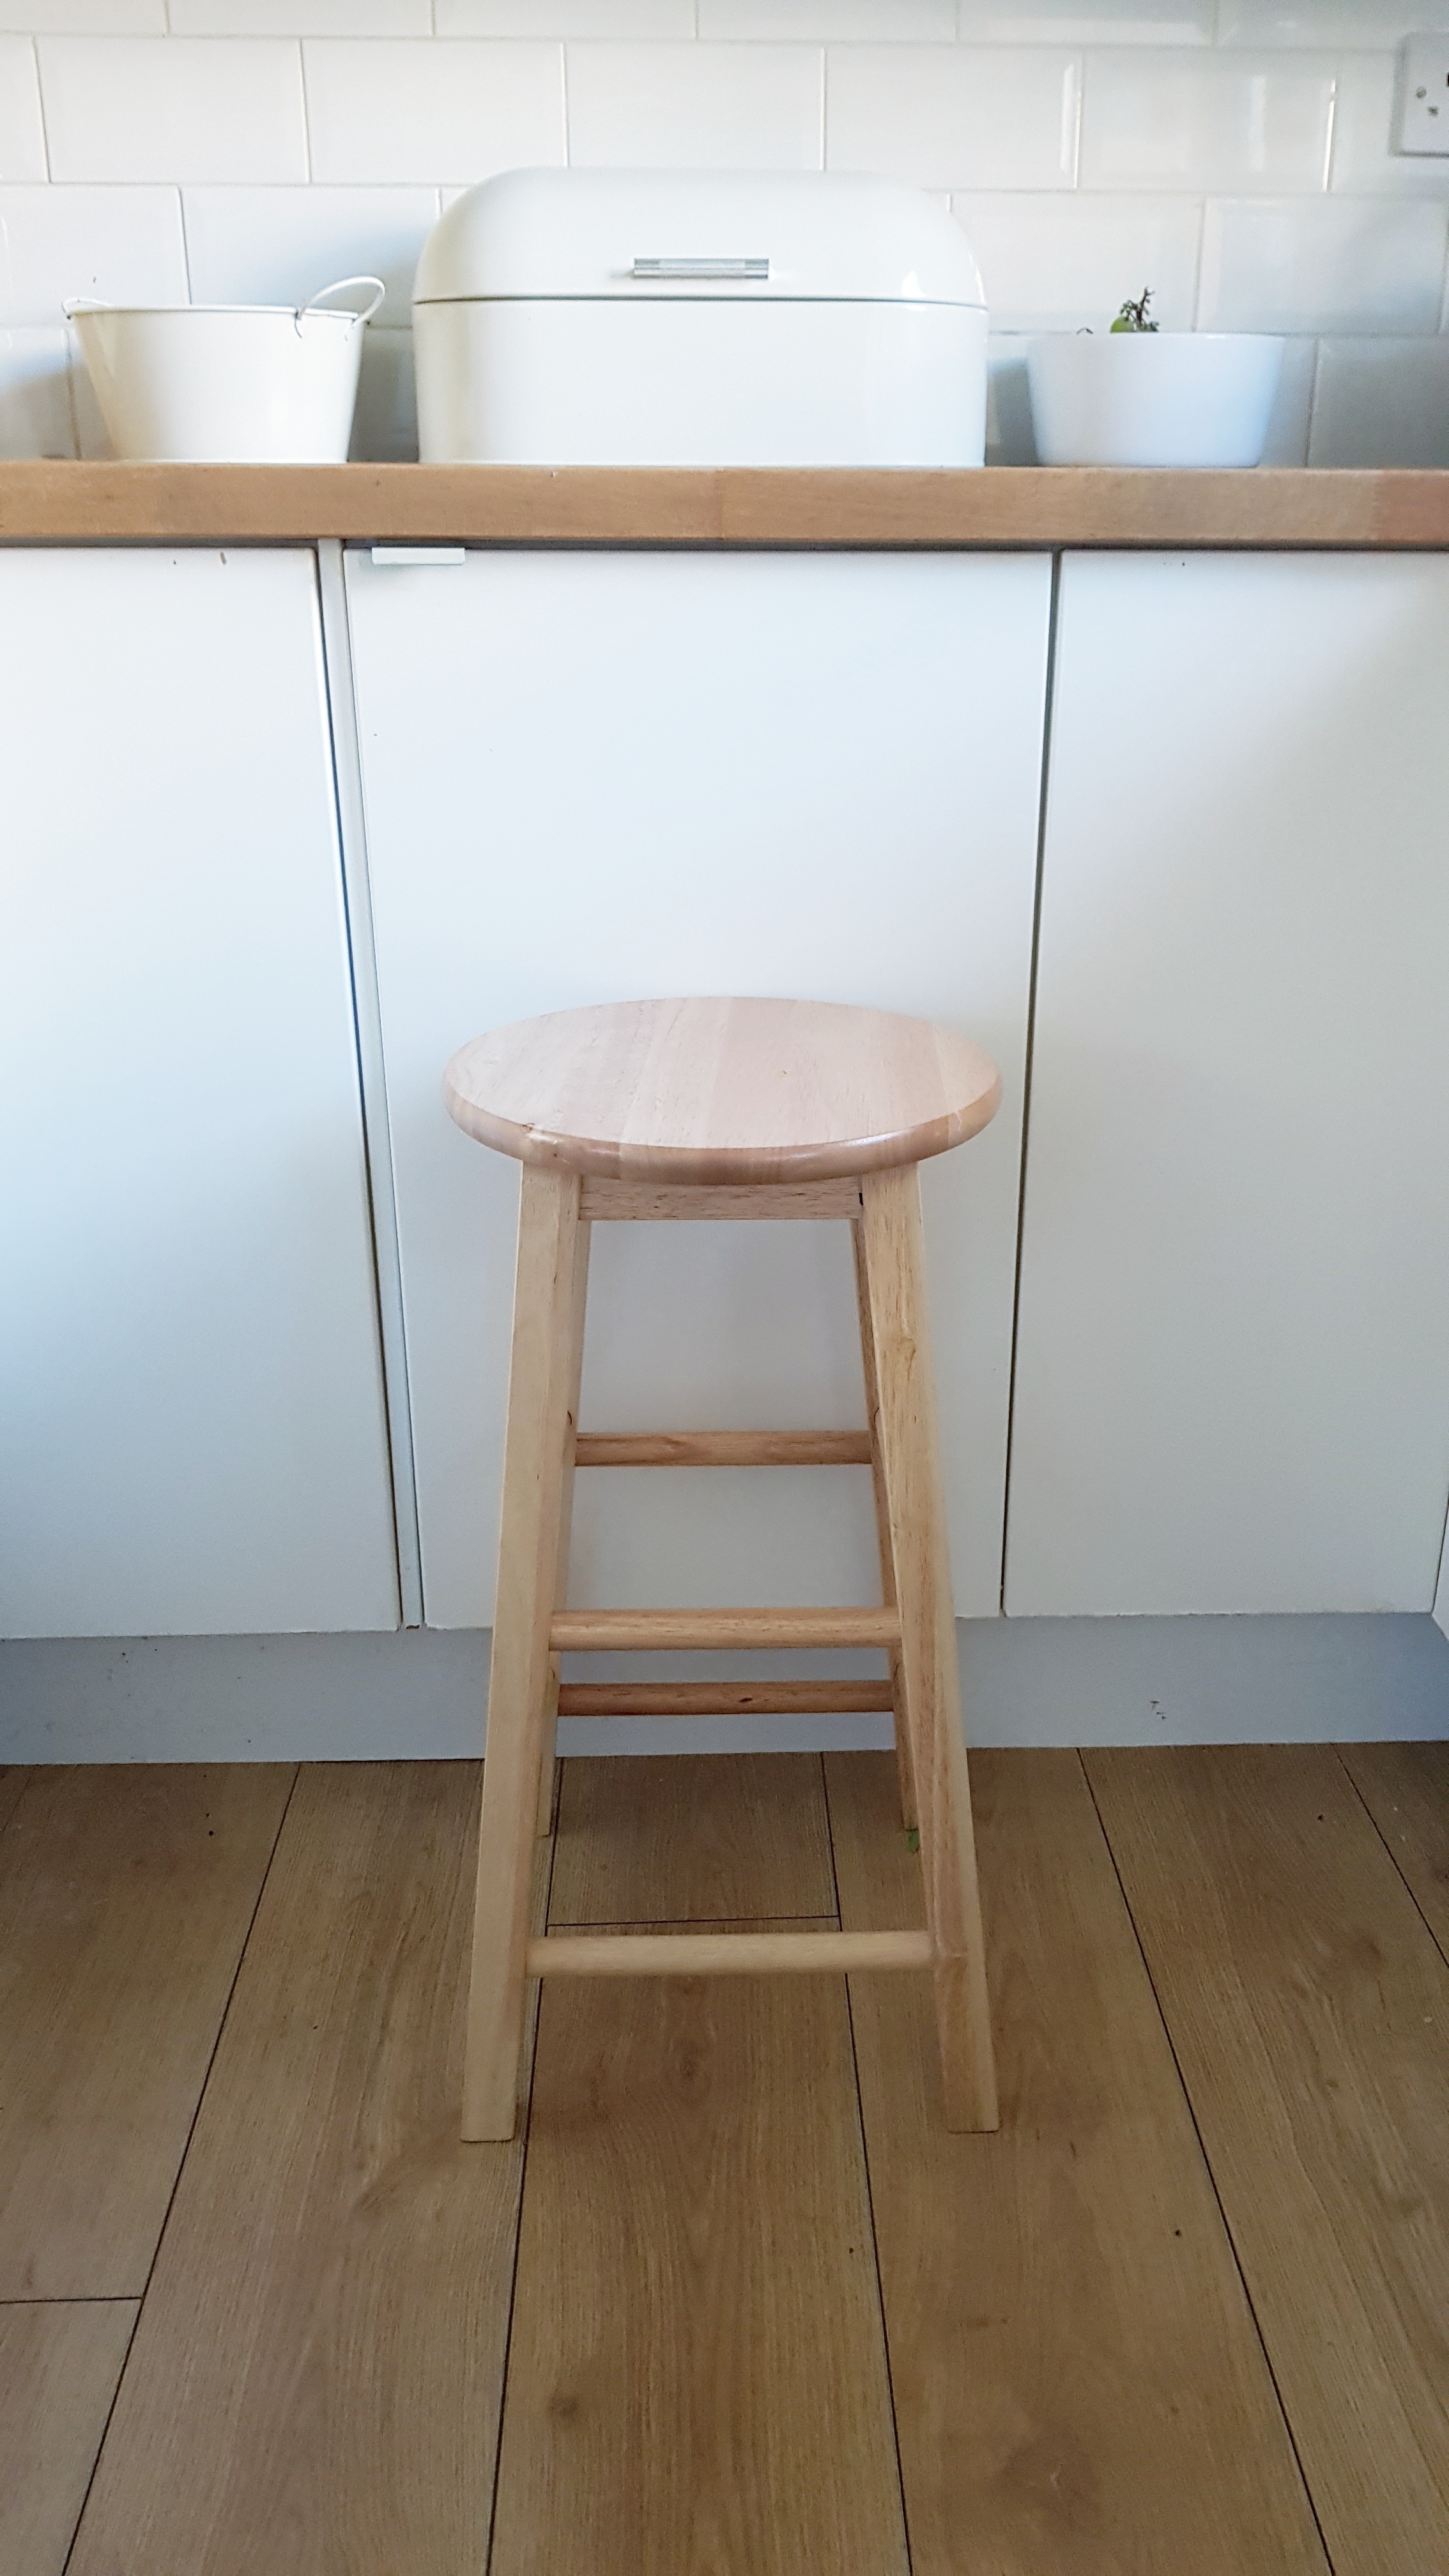 A stool might not be everybody's idea of self-care but it has definitely made a difference to what I can manage.